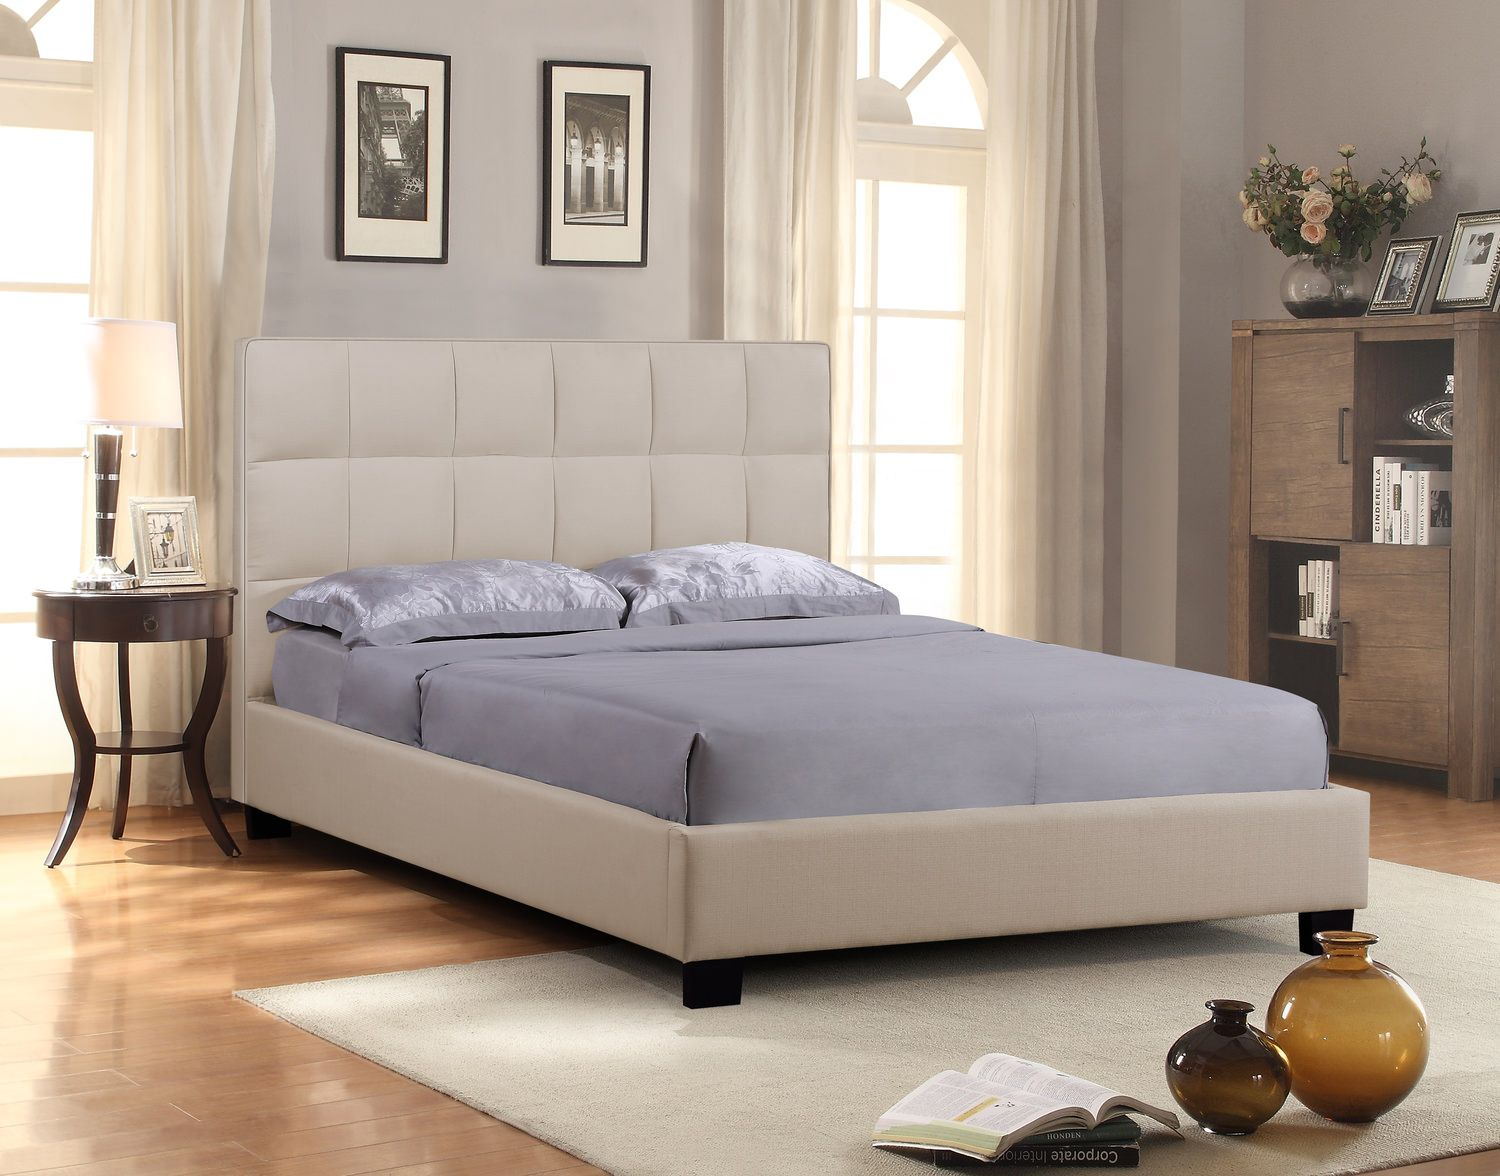 The Loft Upholstered Bed   Sand | HOM Furniture | Furniture Stores In Minneapolis  Minnesota U0026